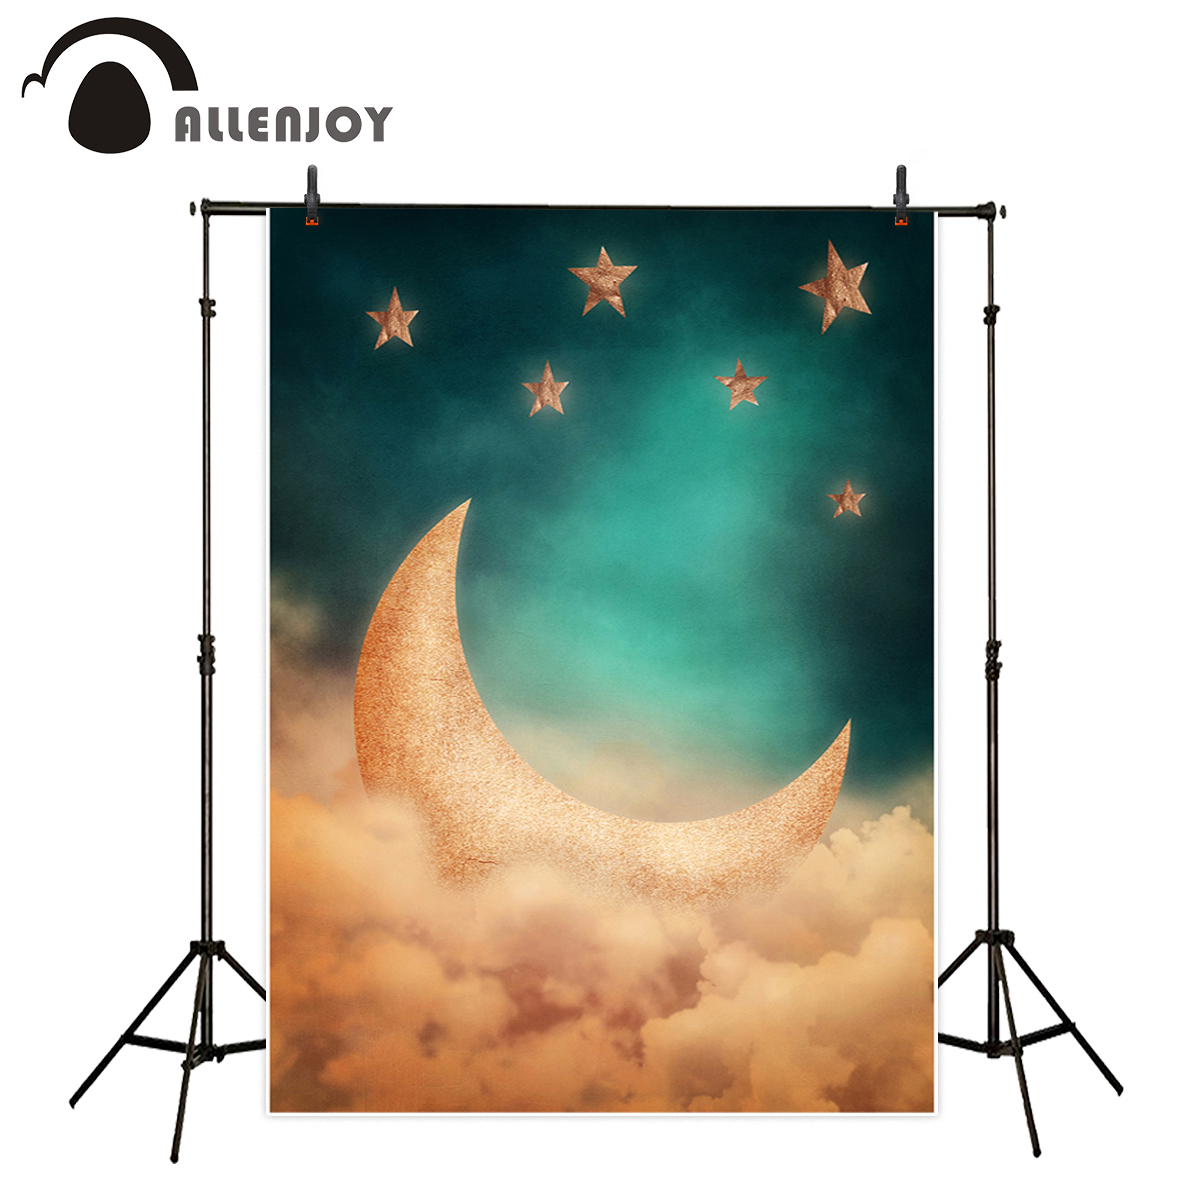 Allenjoy camera fotografica background Classic vintage stars cloud moon dream vinyl fabric fotografia photocall for photo studio allenjoy photographic background rainbow sun lawn cloud newborn lovely princess photocall custom camera fotografica